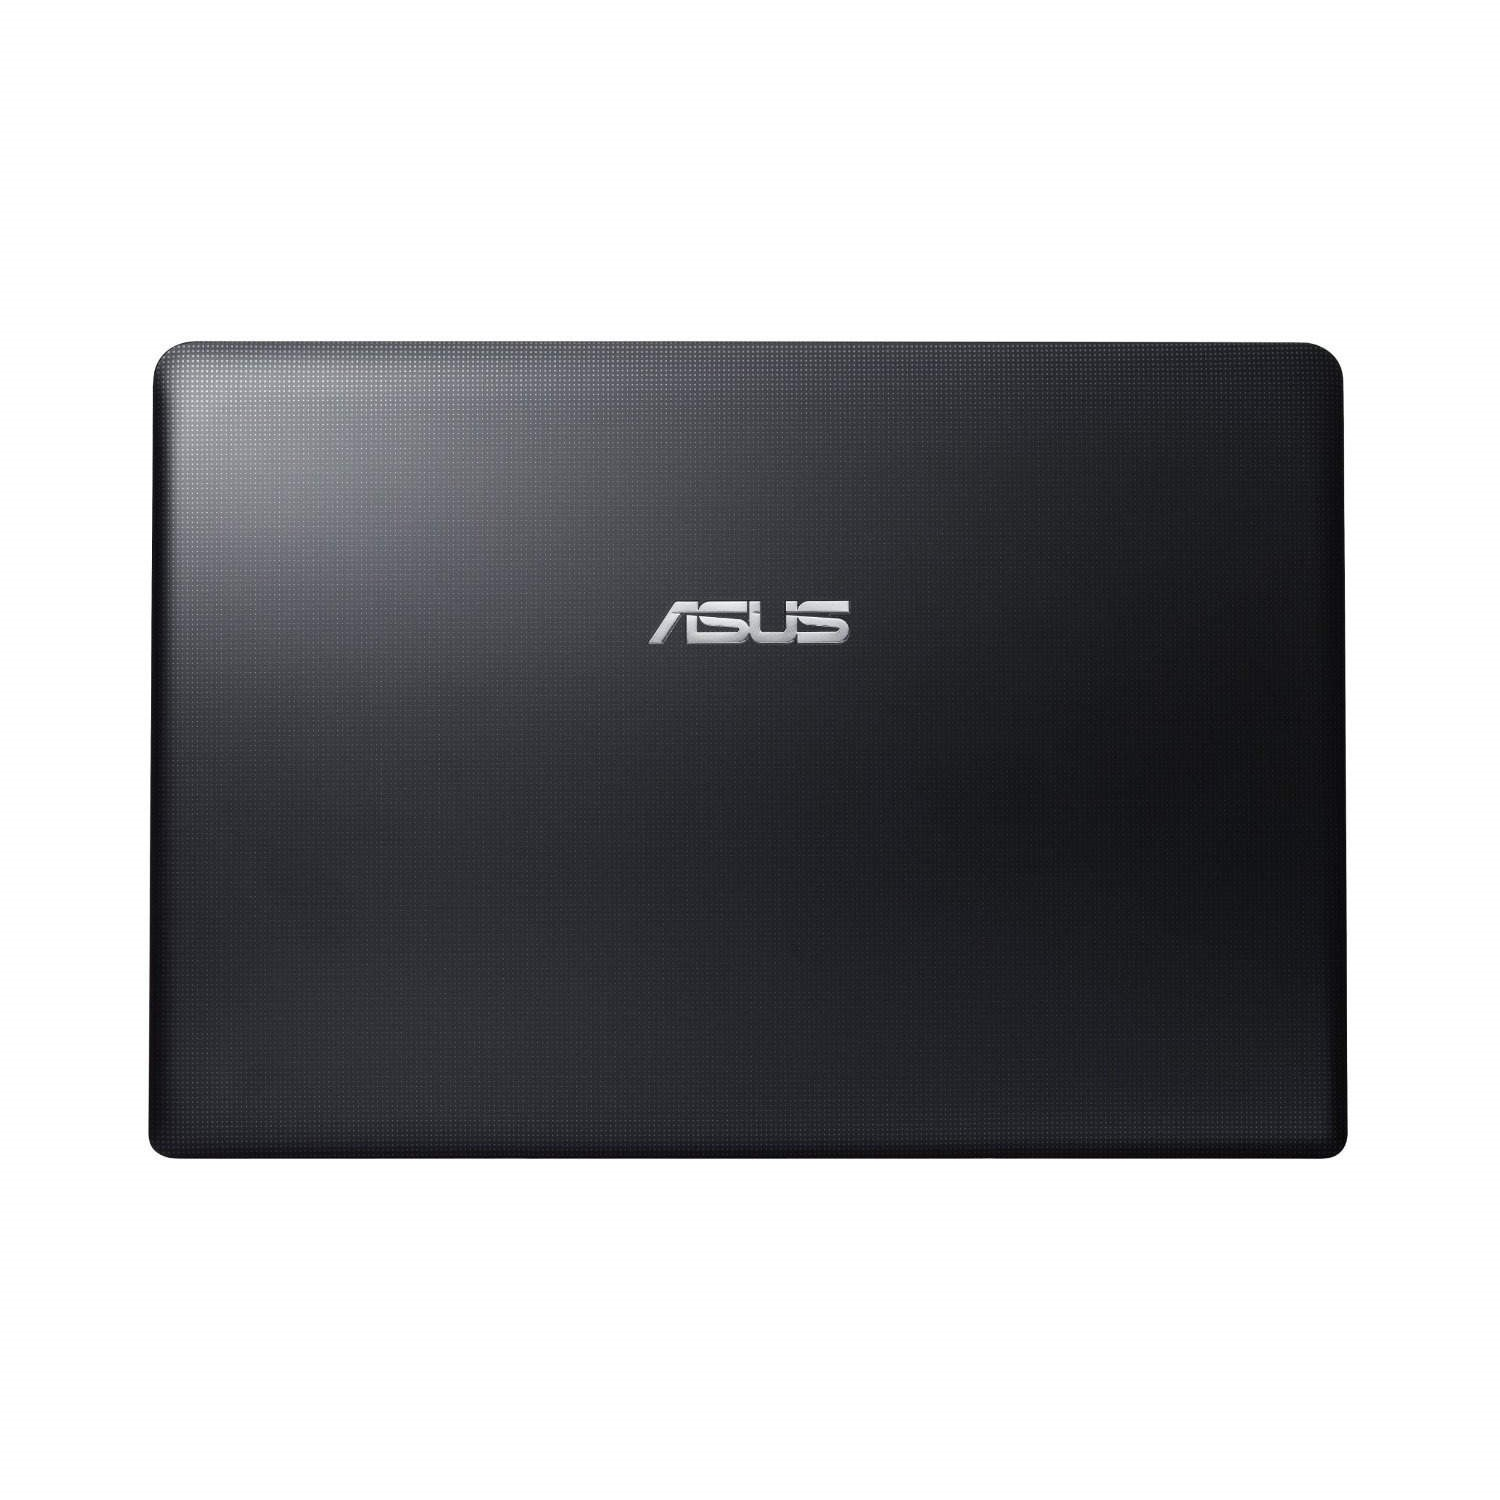 ASUS X301A NOTEBOOK INTEL USB 3.0 DRIVERS (2019)